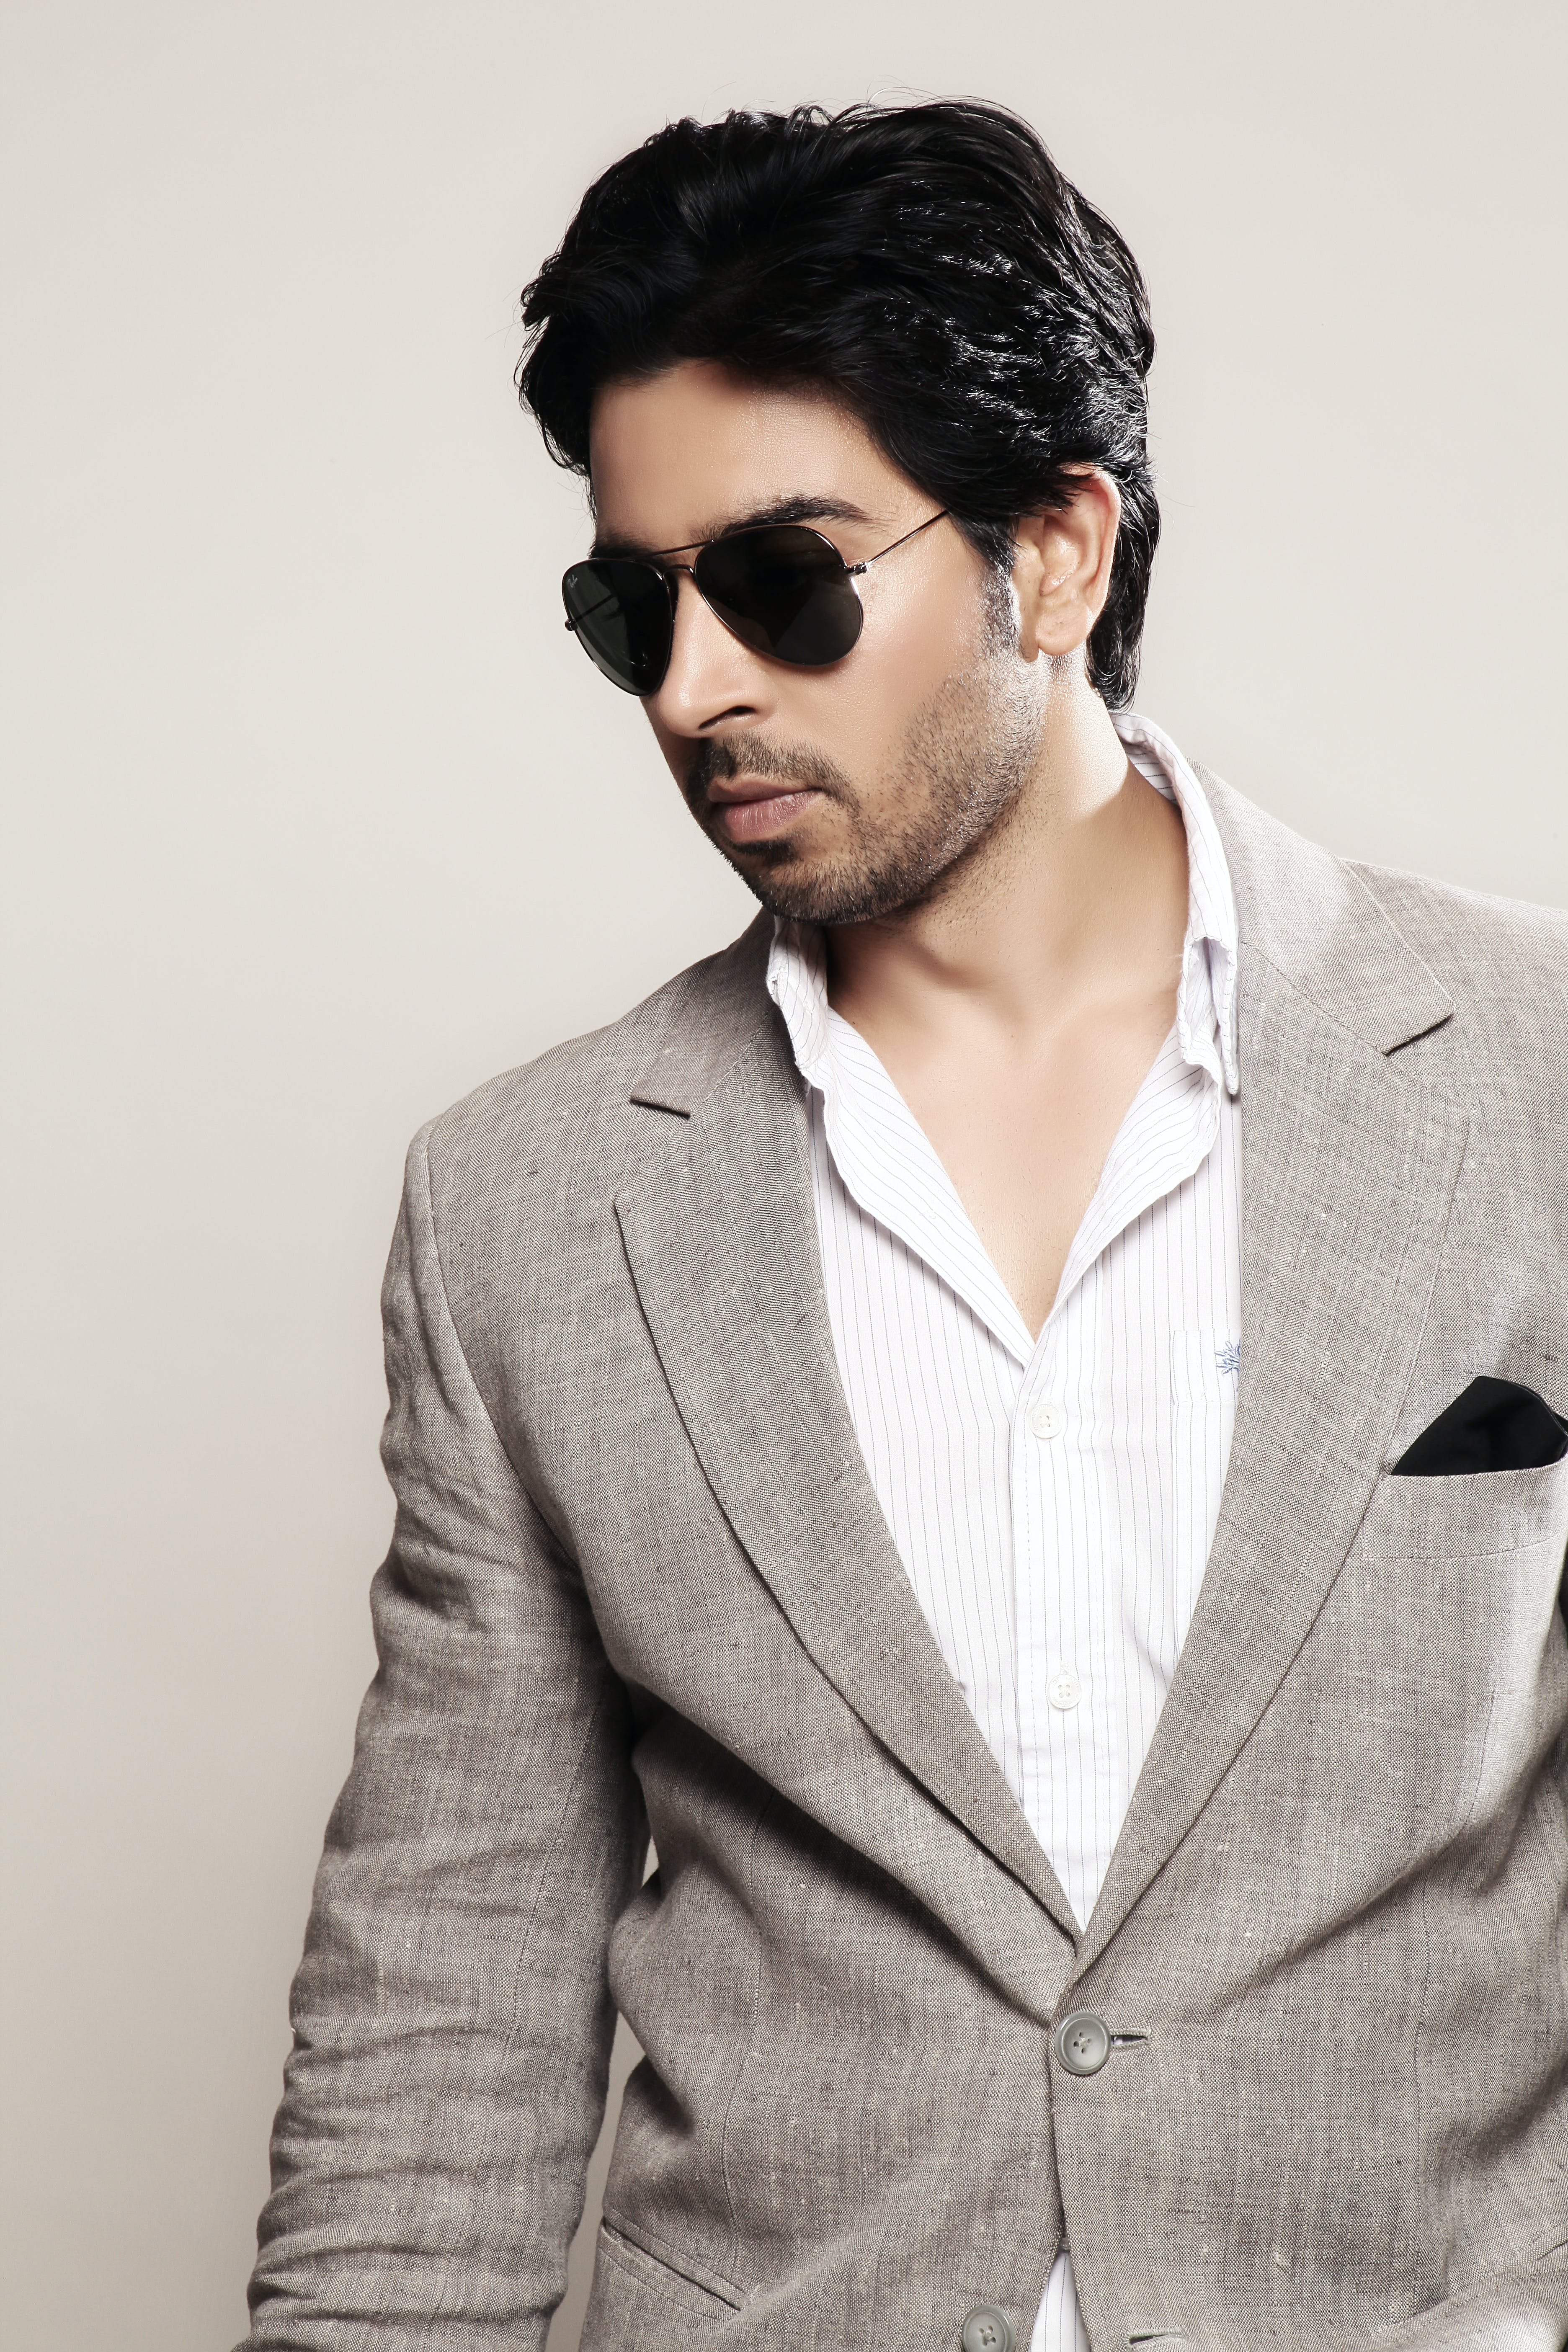 Free stock photo of businessman in grey suit, handsome man in shades and grey suit